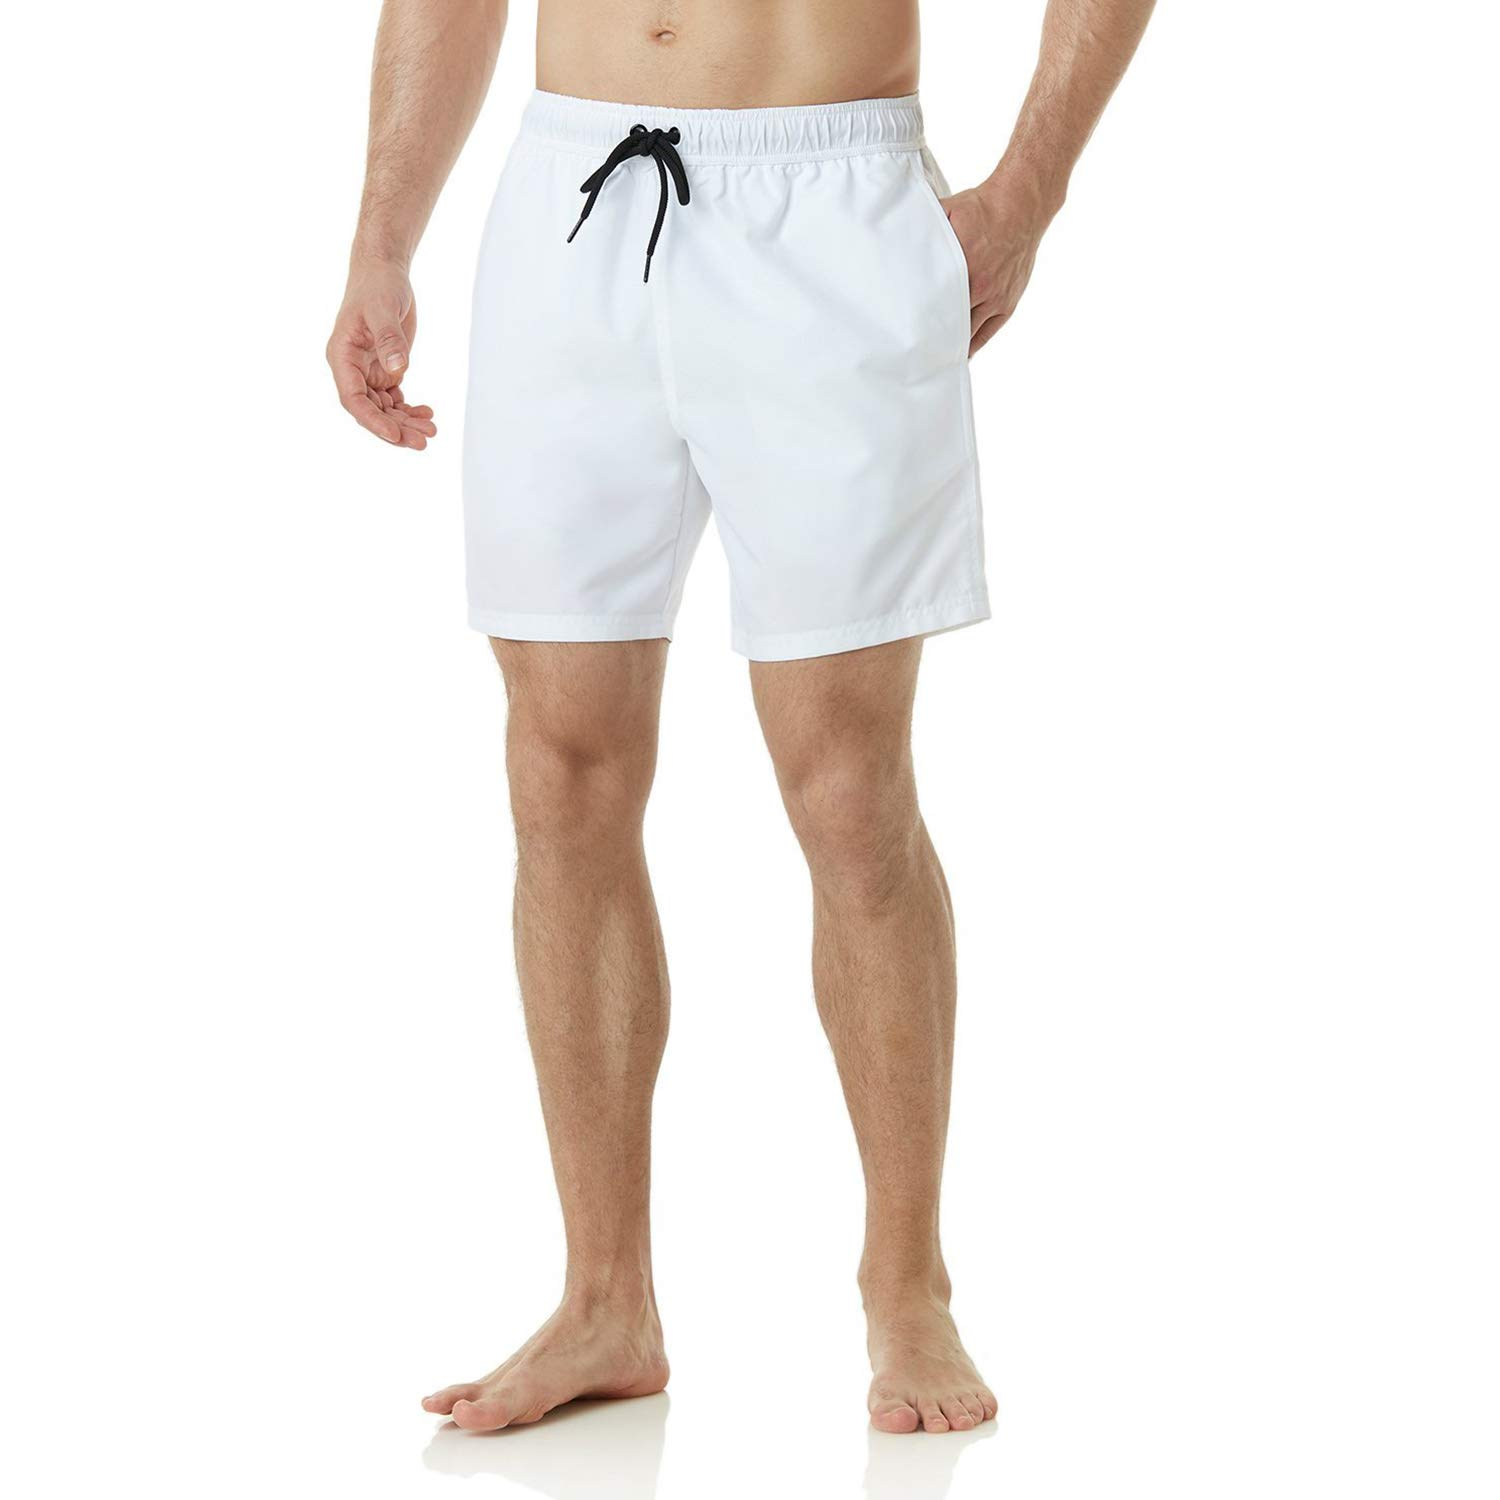 AMRANDOM Boys Board Shorts Cute Sheep Quick Dry Swim Surf Trunks